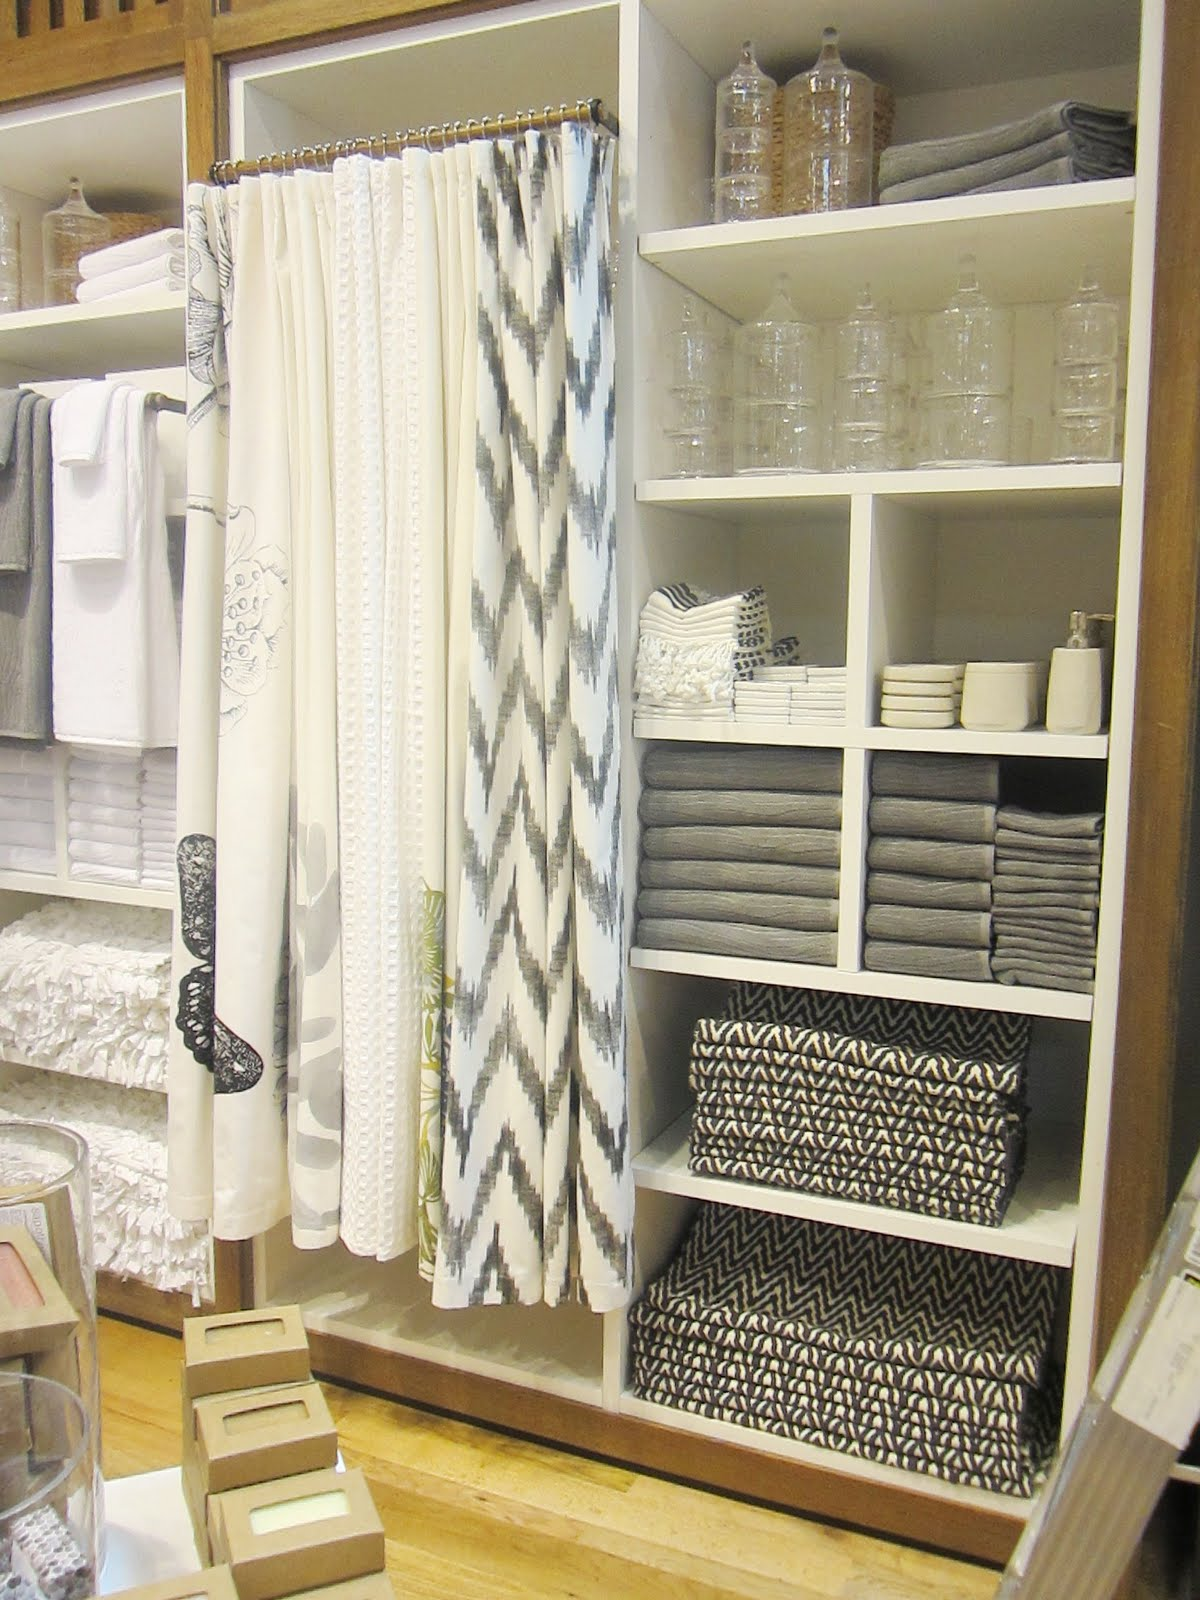 West elm bathroom accessories - White Cabinet Holding A Variety Of Black White And Grey Bath Accessories